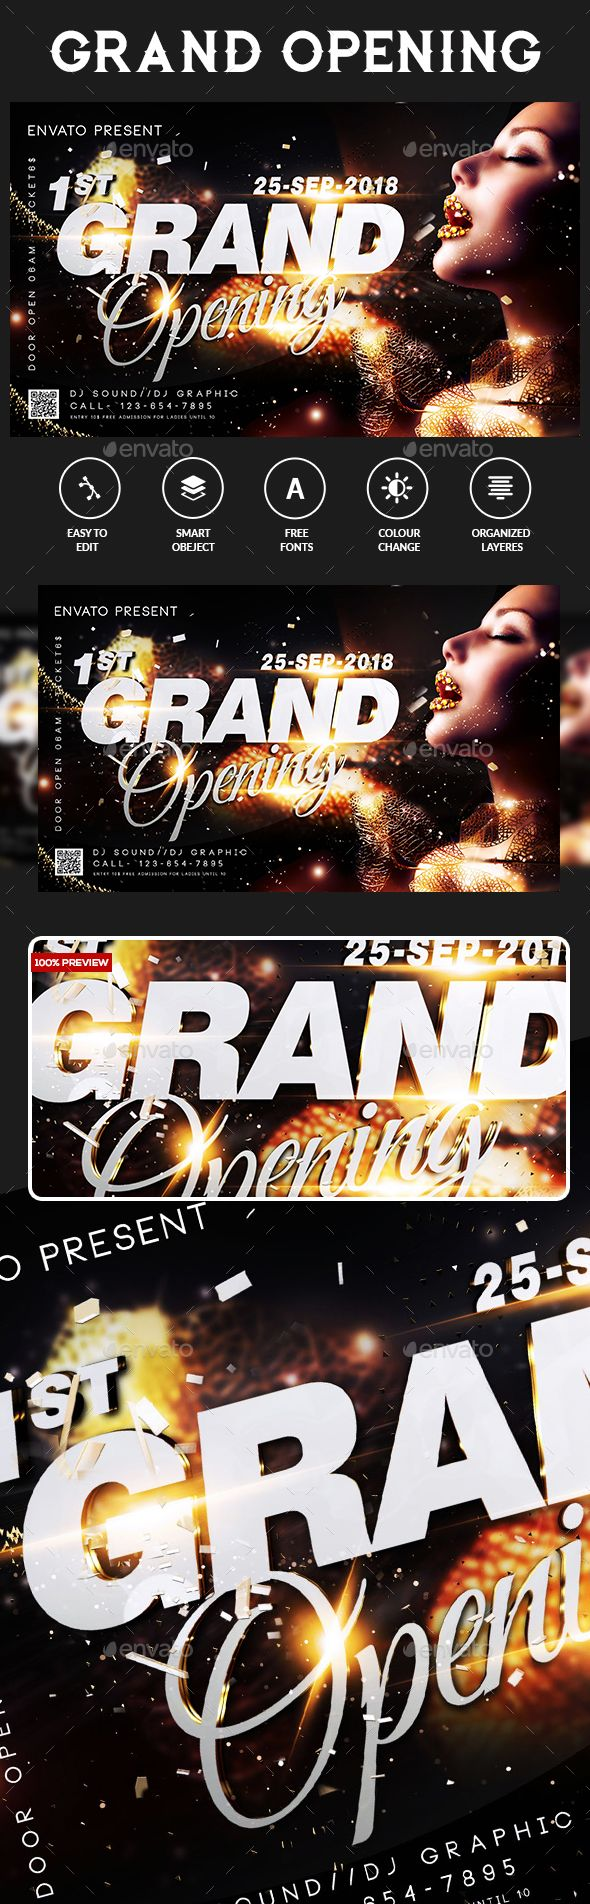 Grand Opening Flyer  Flyer Template Template And Party Flyer